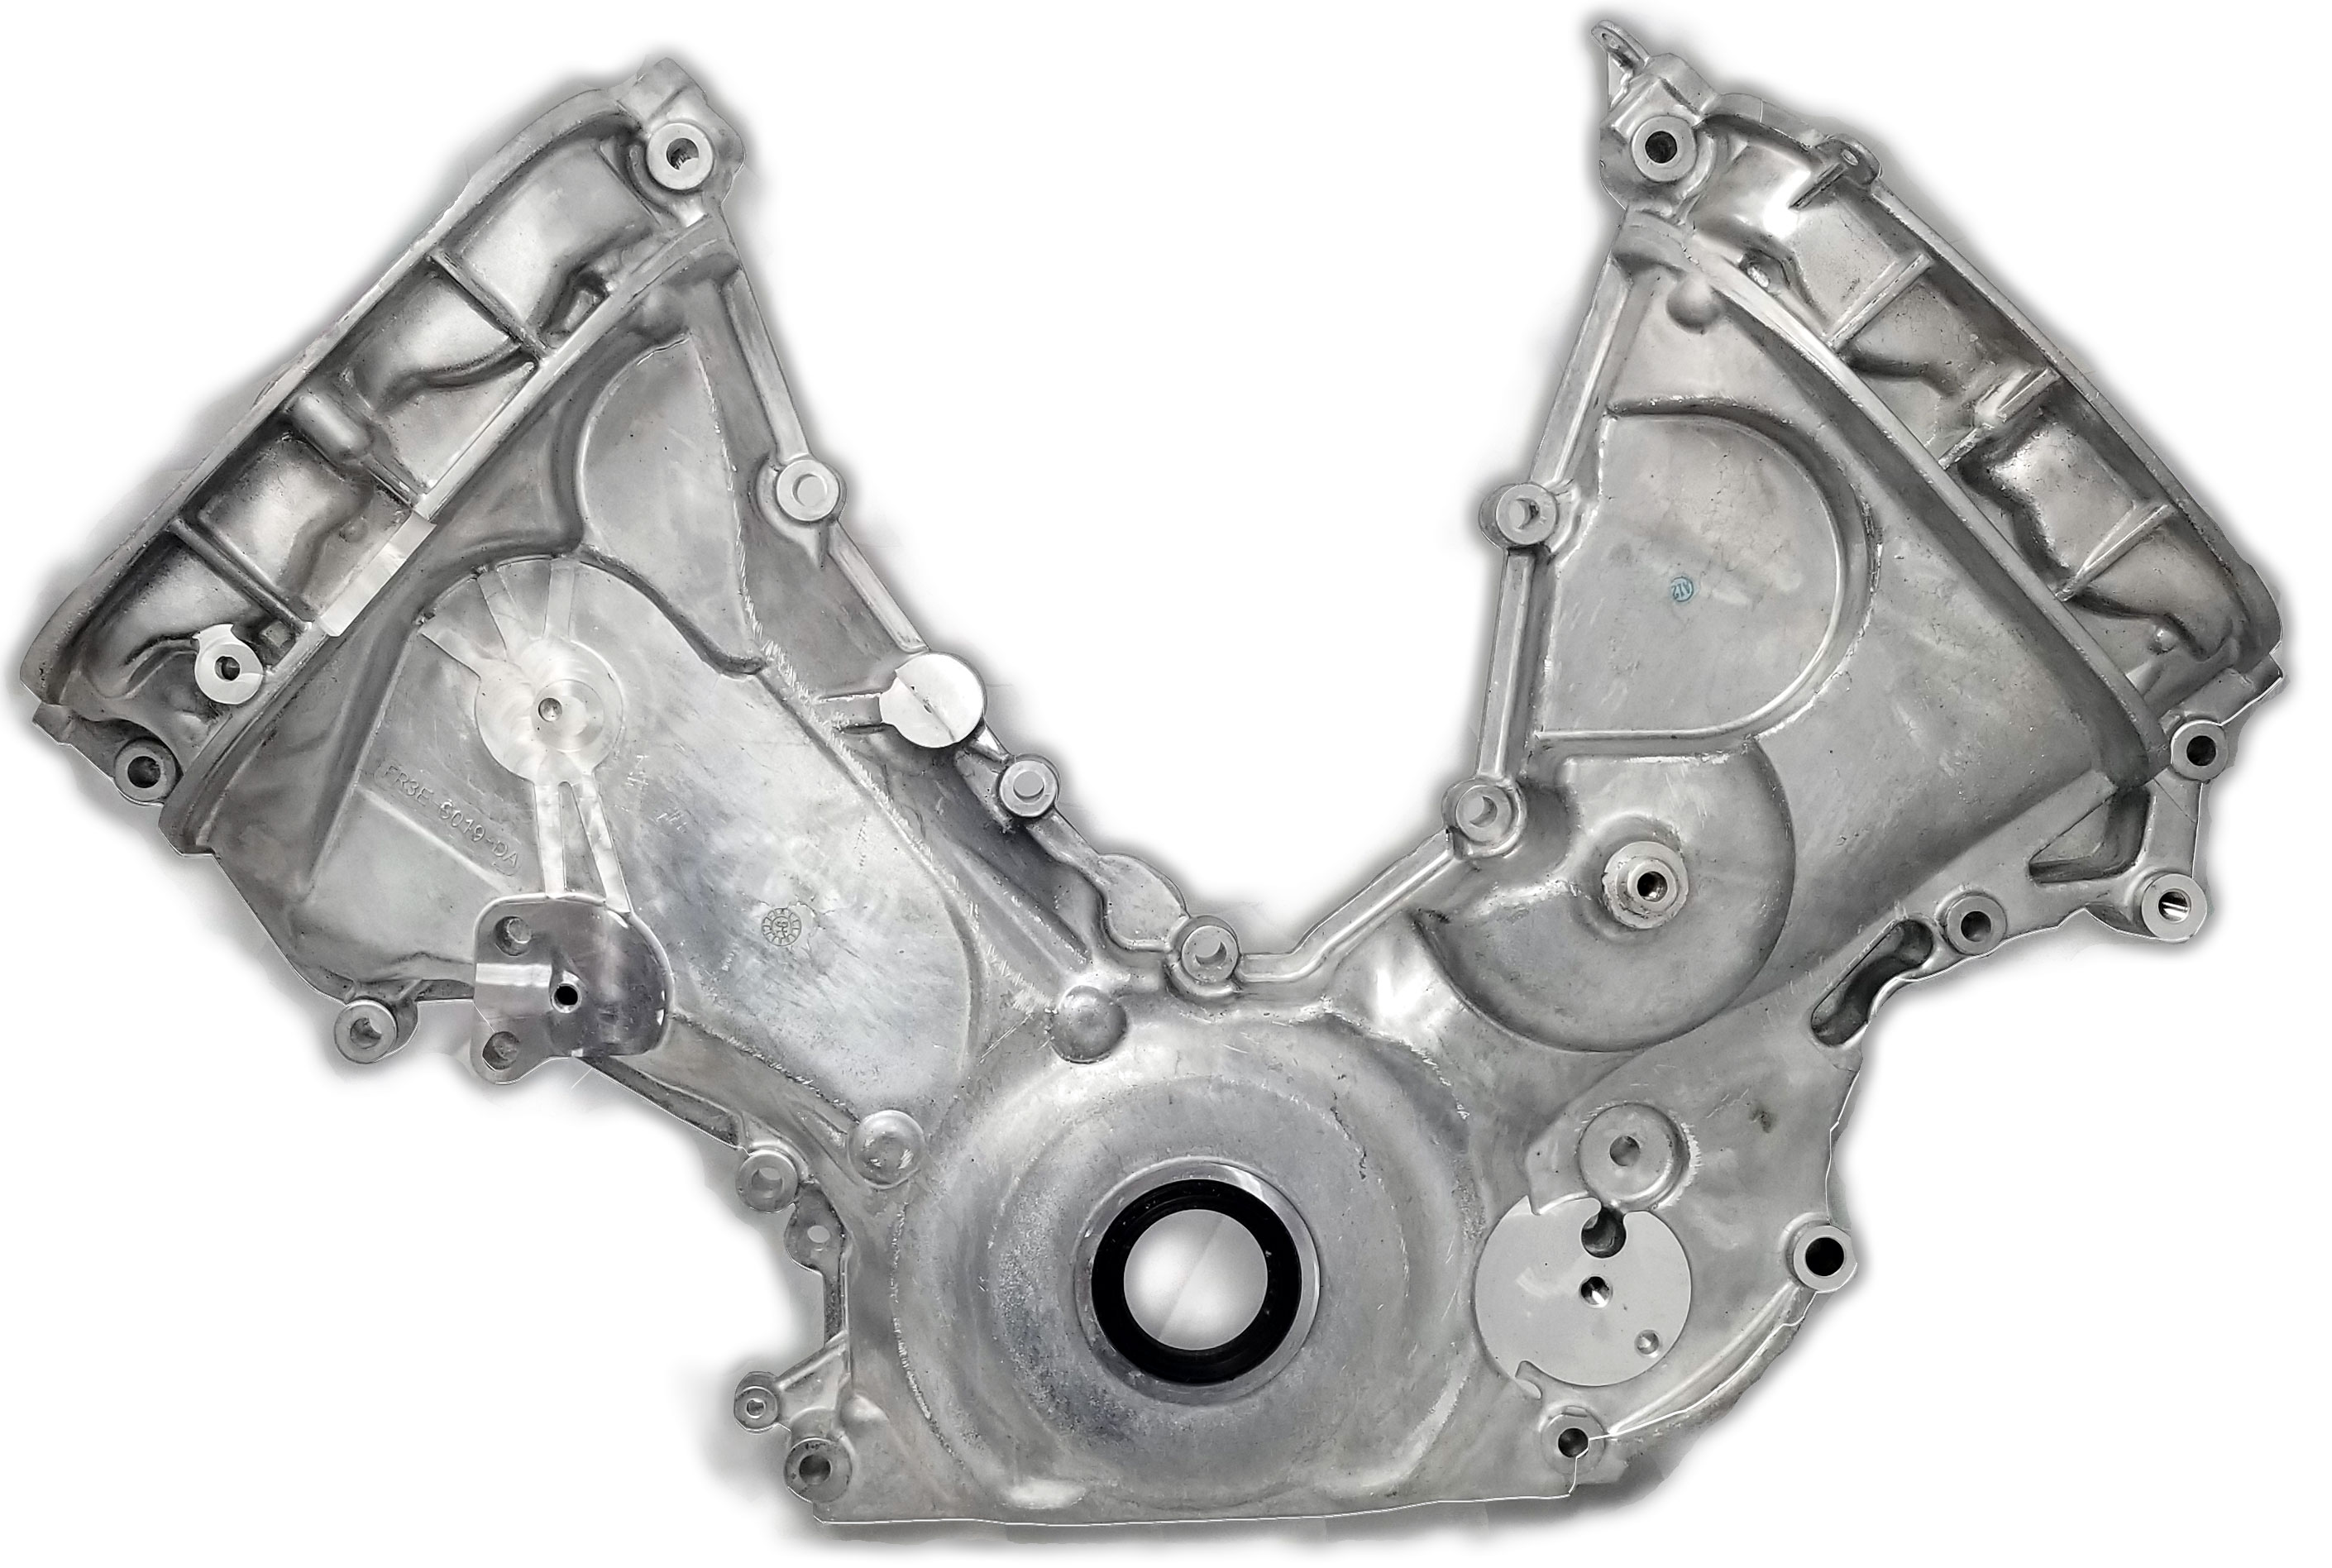 COYOTE SWAP TIMING COVER